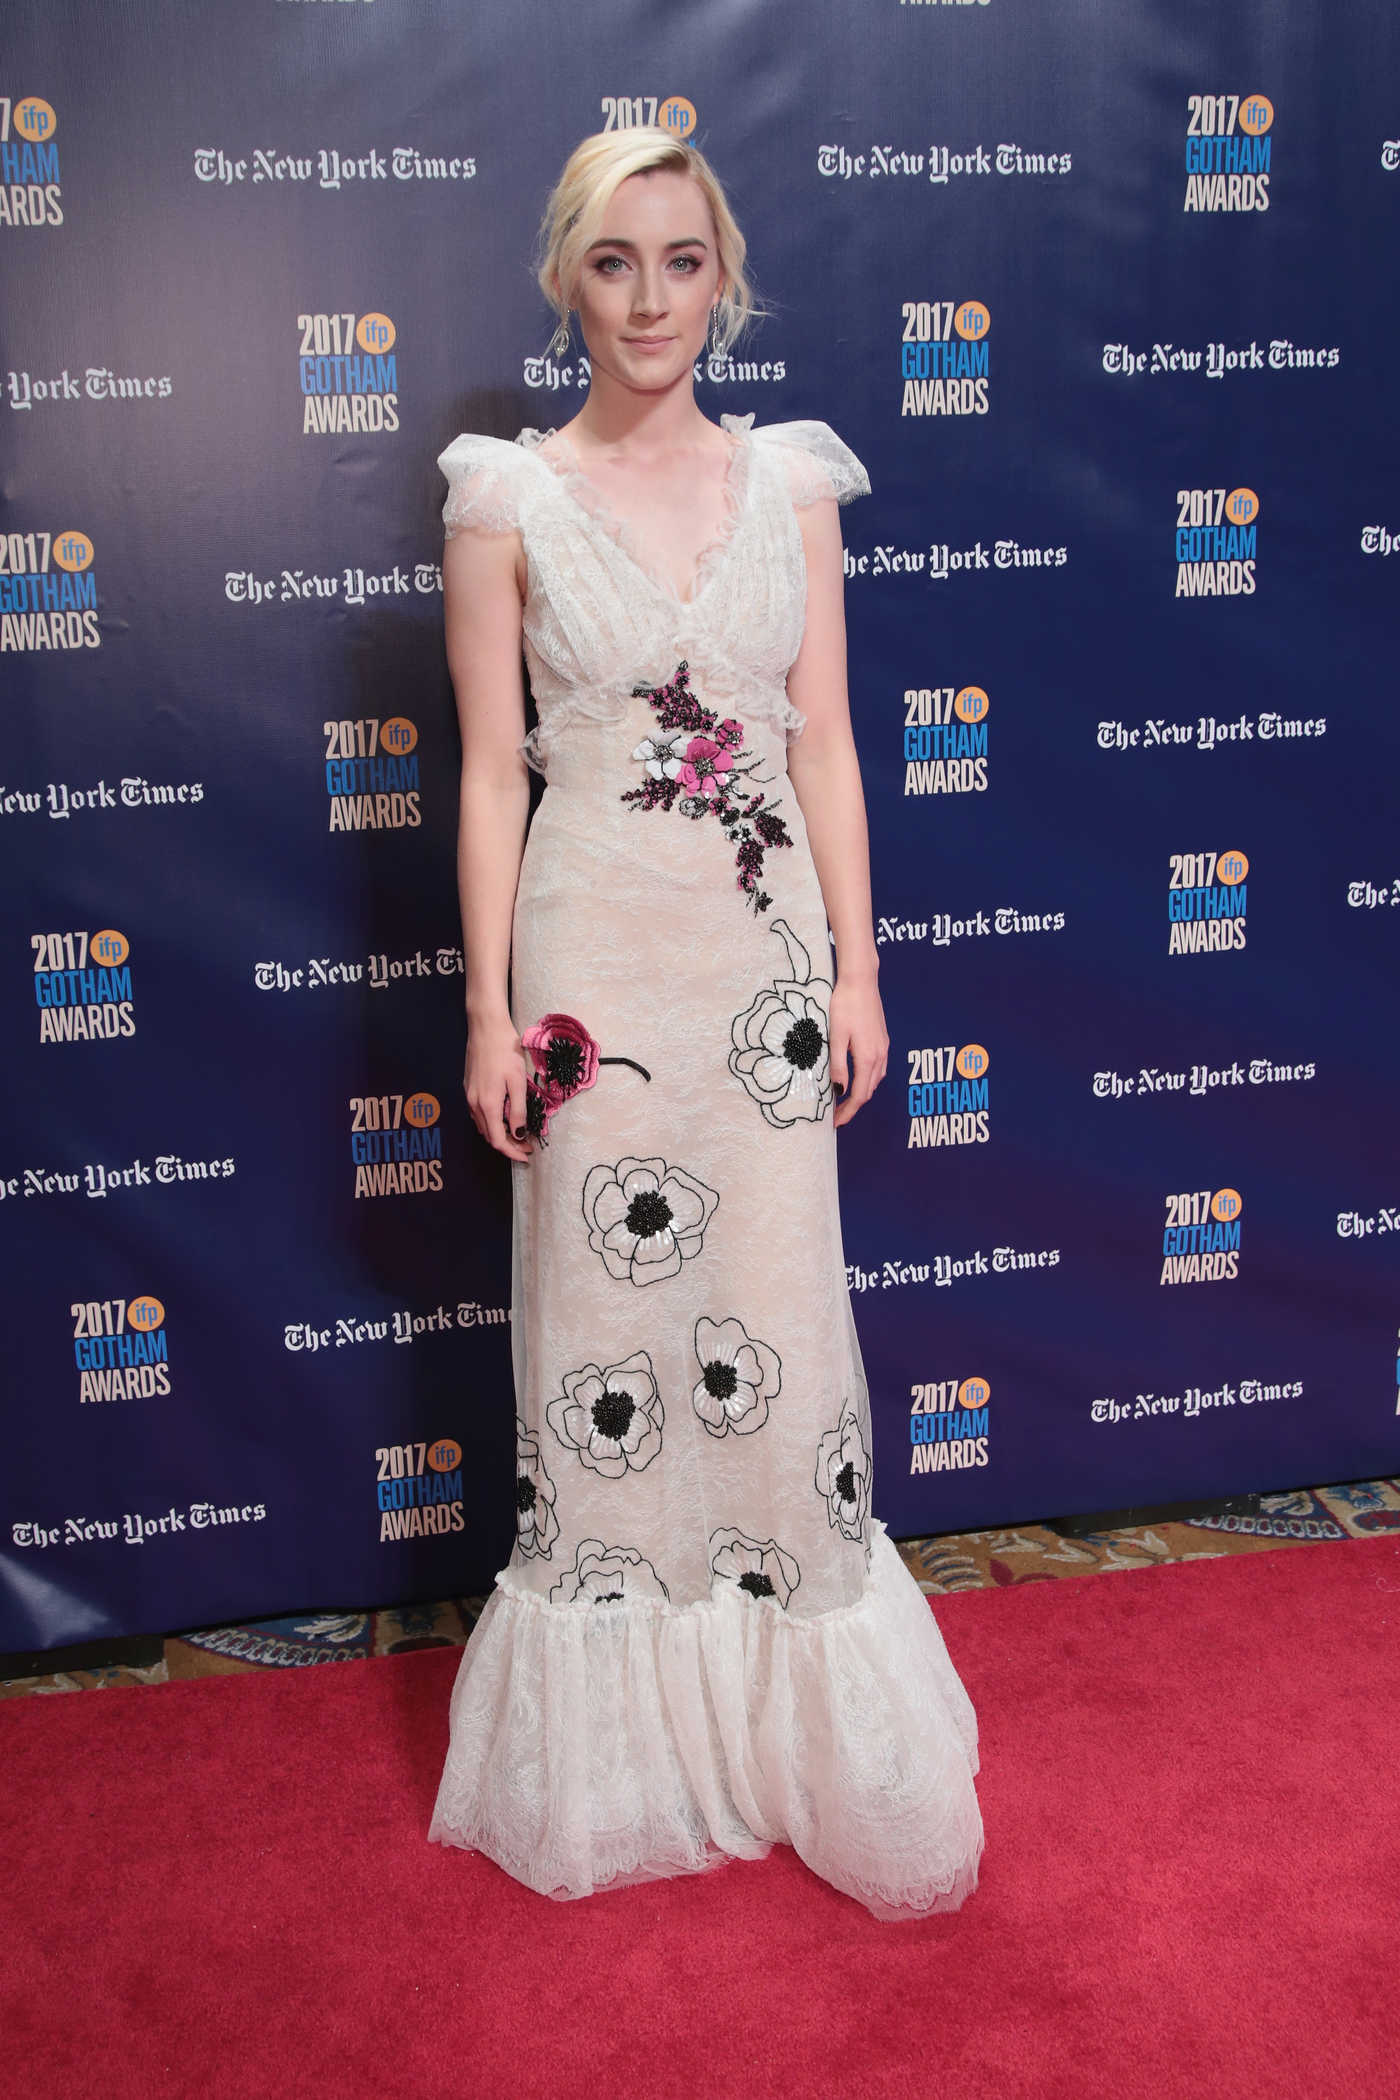 Saoirse Ronan at the 27th Annual Gotham Independent Film Awards in New York City 11/27/2017